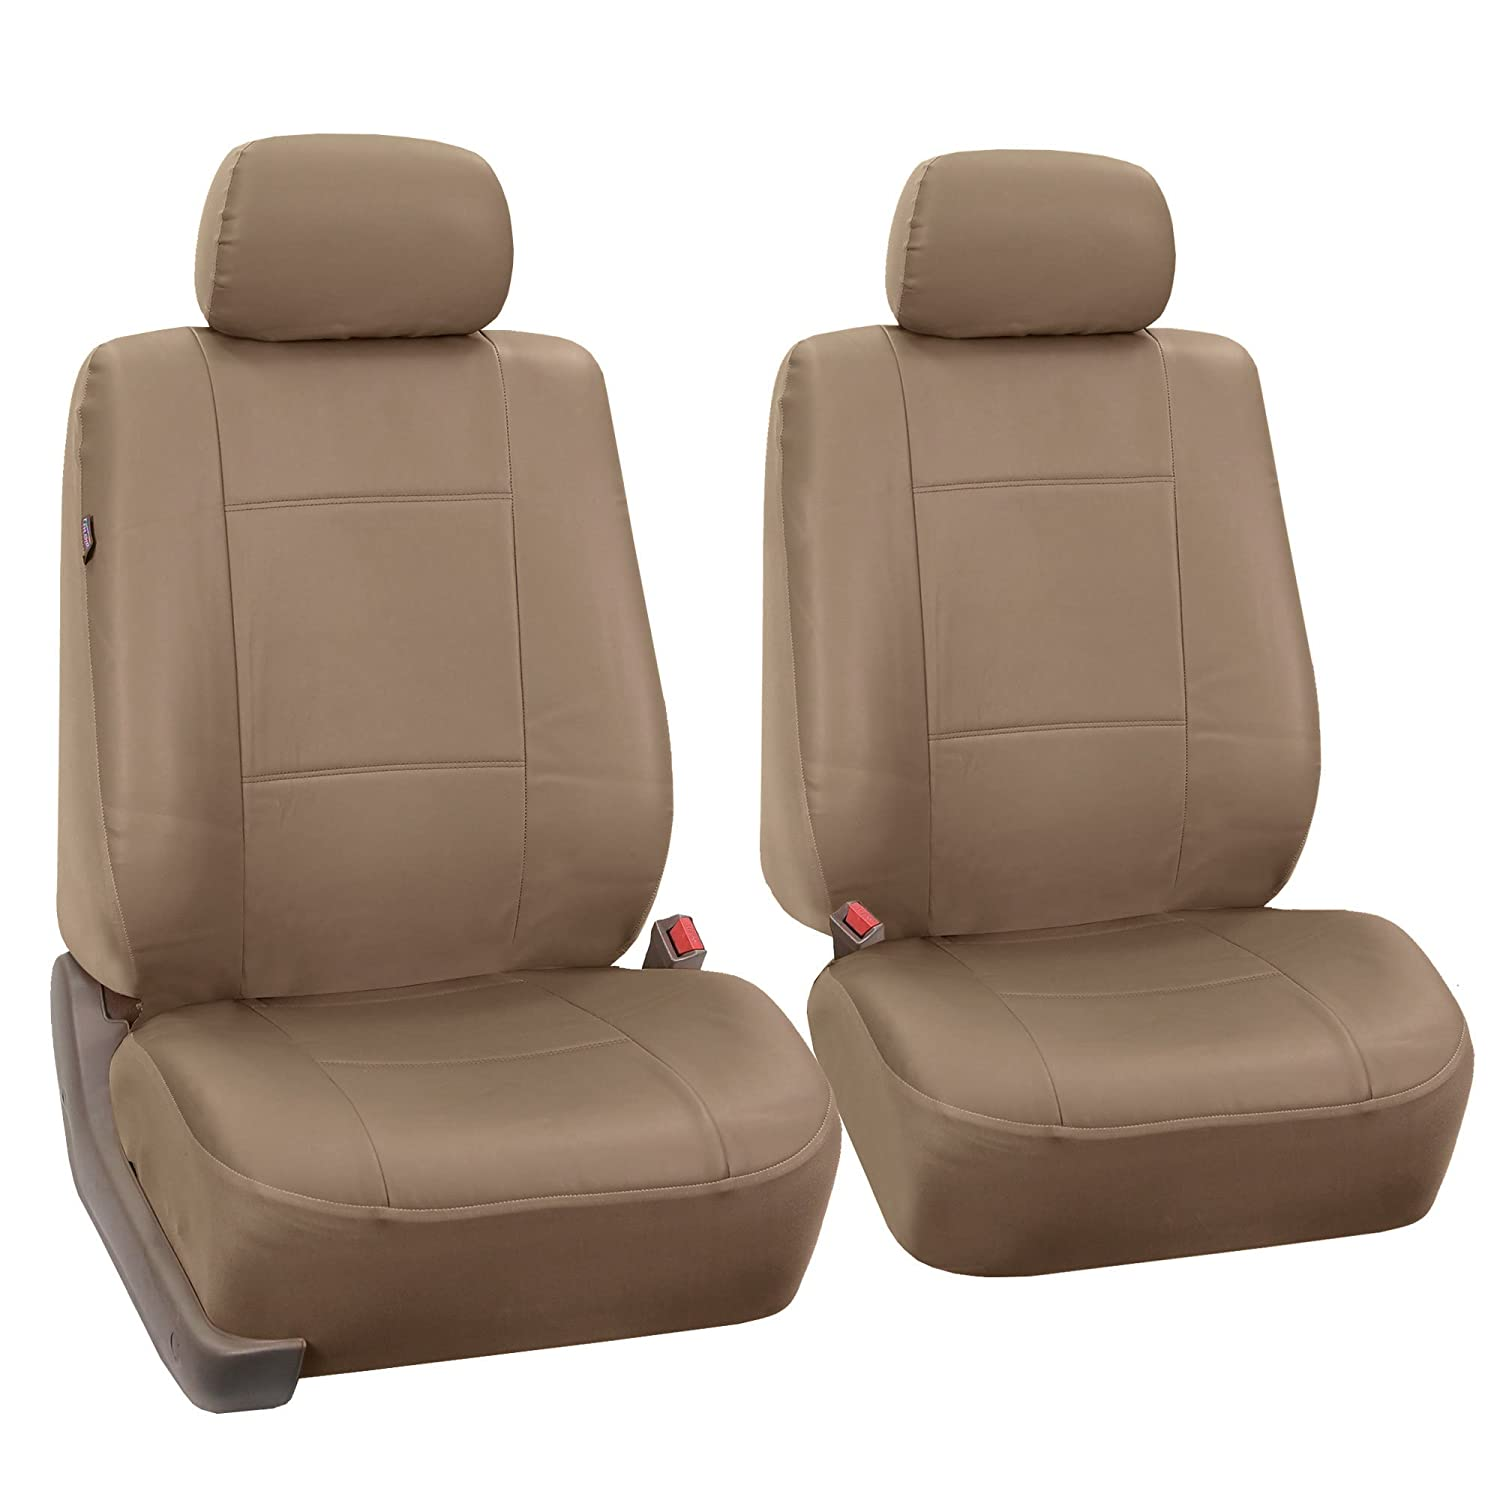 Airbag compatible and Split Bench Solid Black color FH-PU002-1115 Classic Exquisite Leather Car Seat Covers